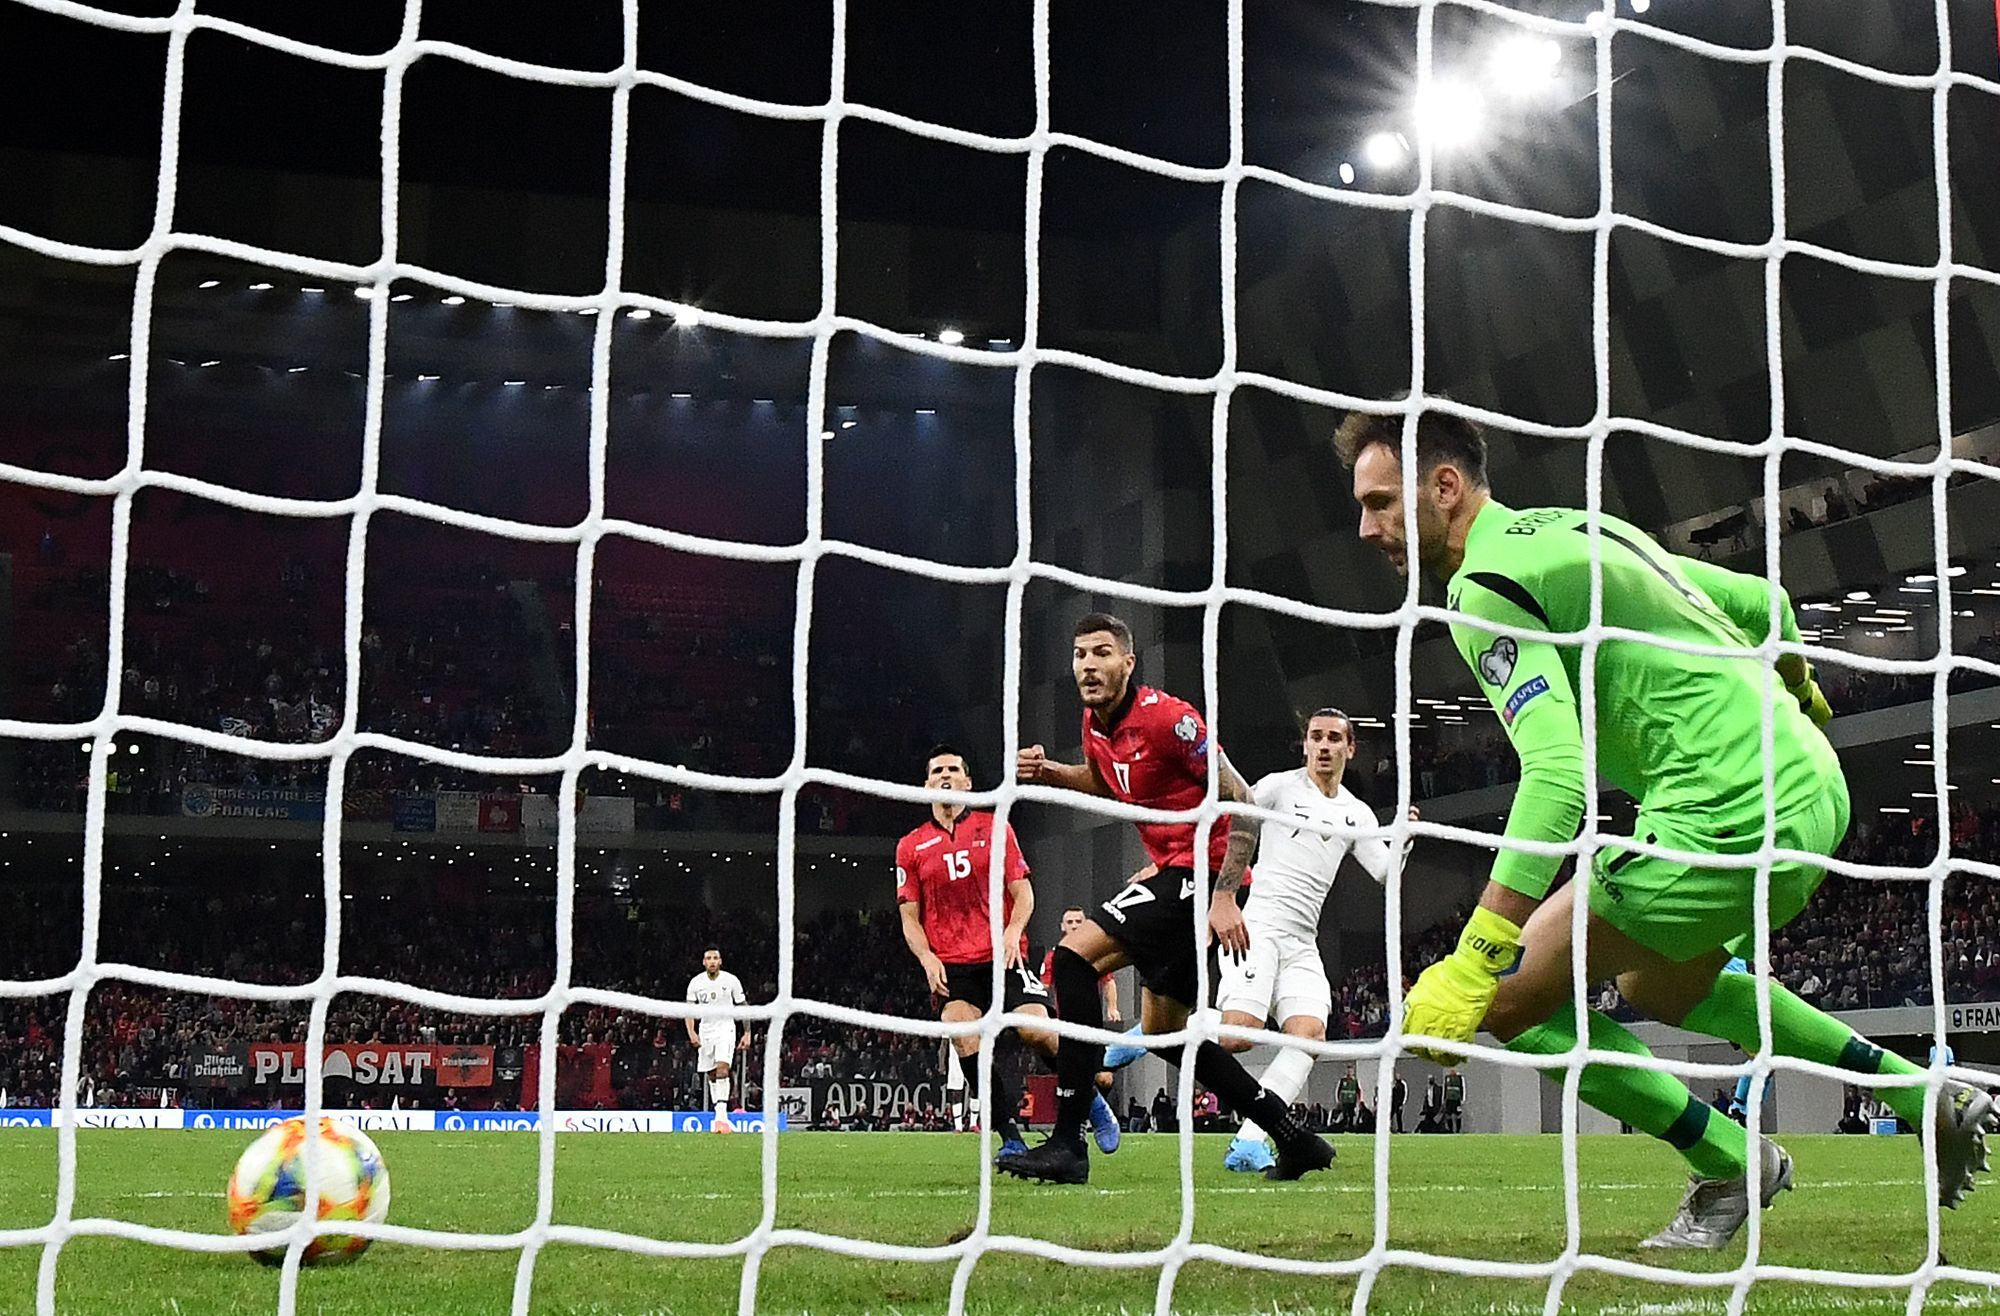 Frances forward Antoine Griezmann (C) scores a goal during the Euro 2020 Group H football qualification match between <HIT>Albania</HIT> and France at the Air <HIT>Albania</HIT> Stadium in Tirana, on November 17, 2019. (Photo by FRANCK FIFE / AFP)